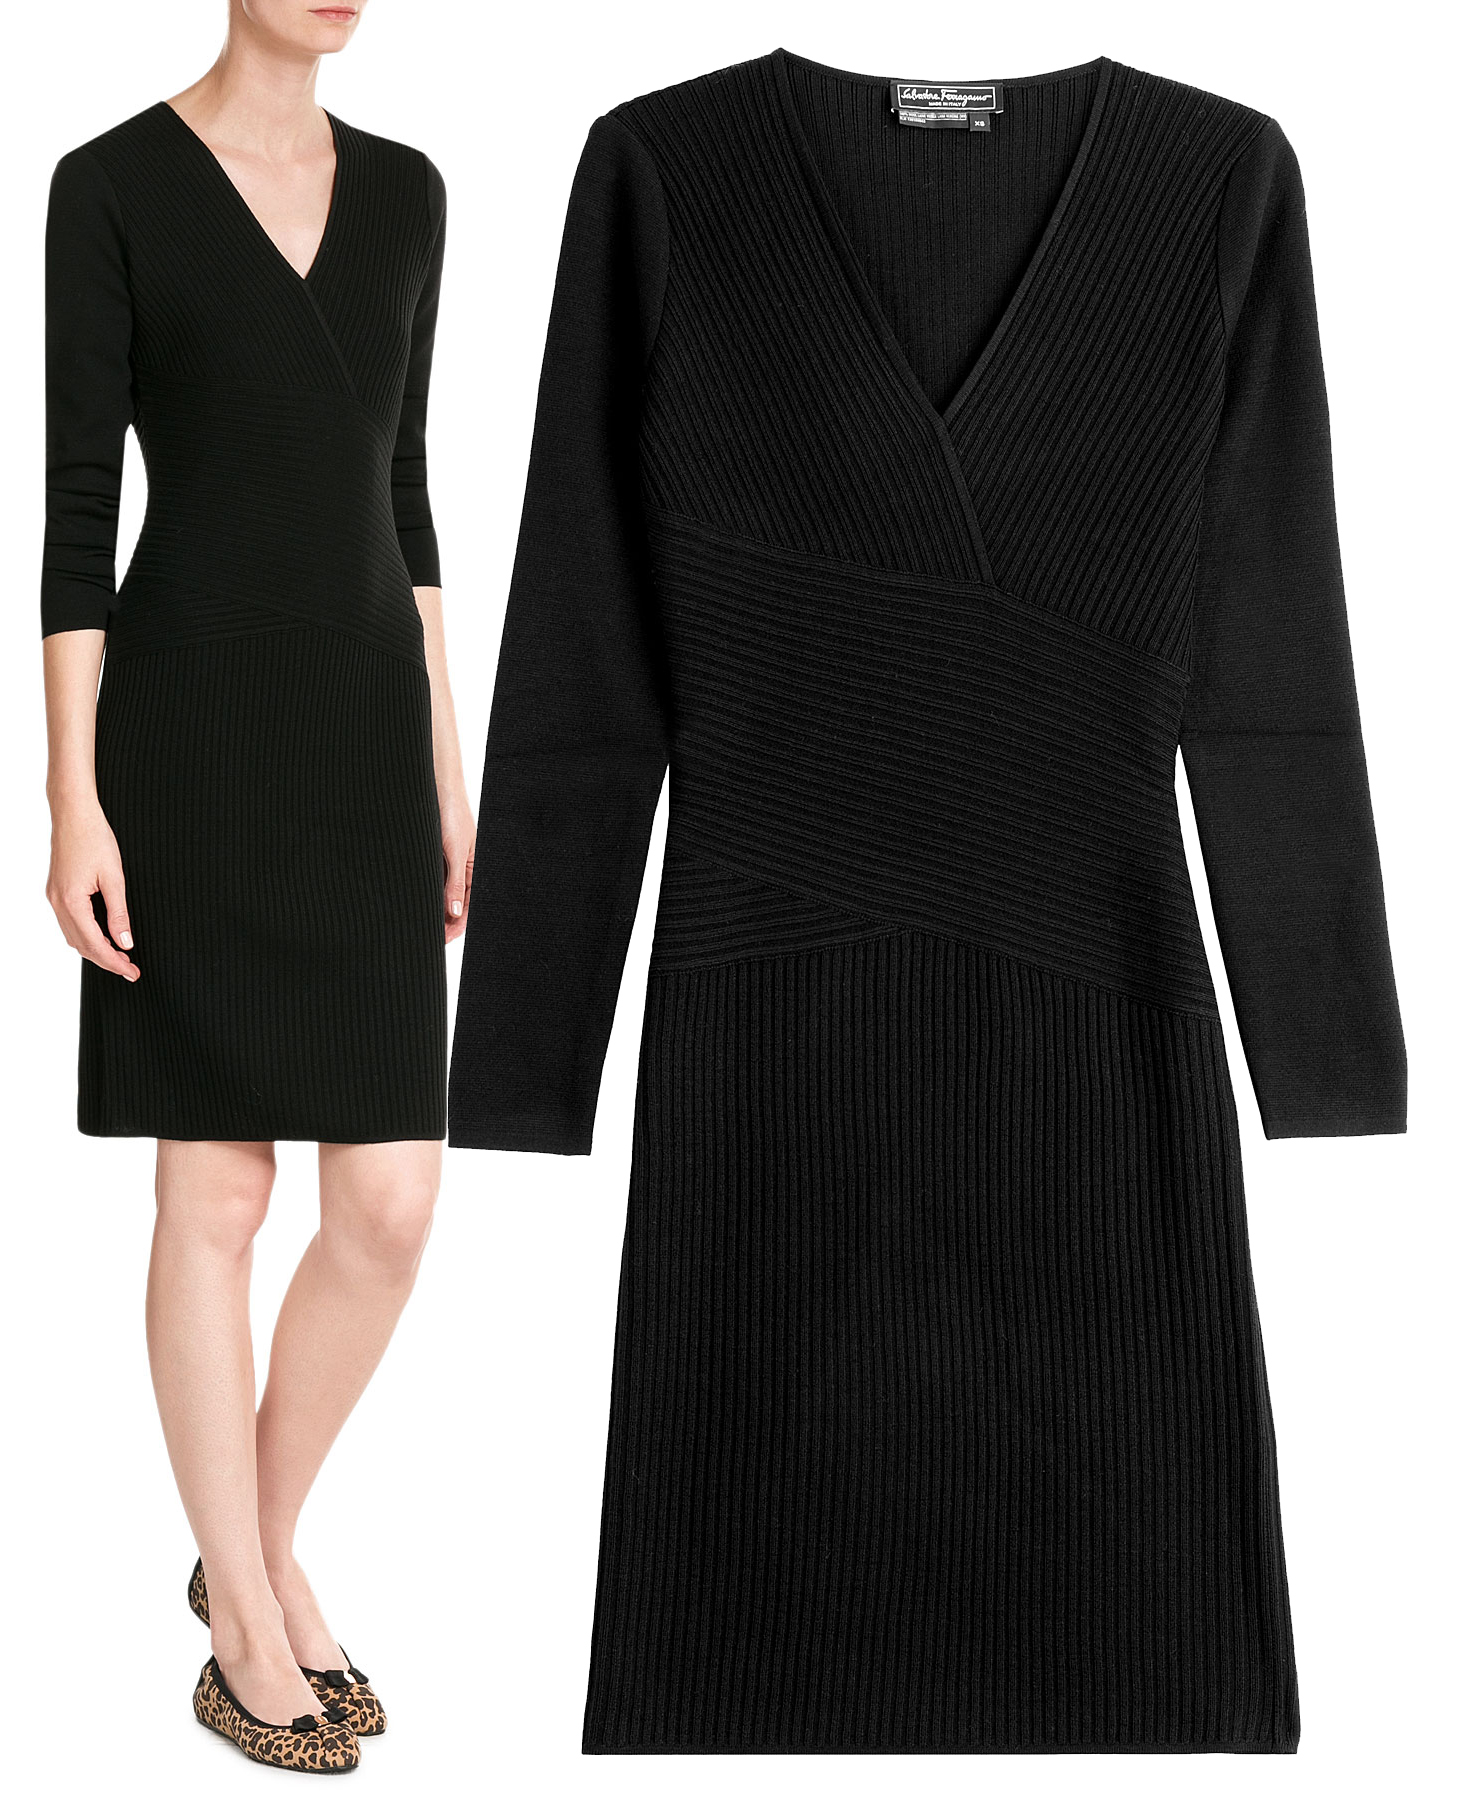 Black Salvatore Ferragamo dress ribbed sweater dress